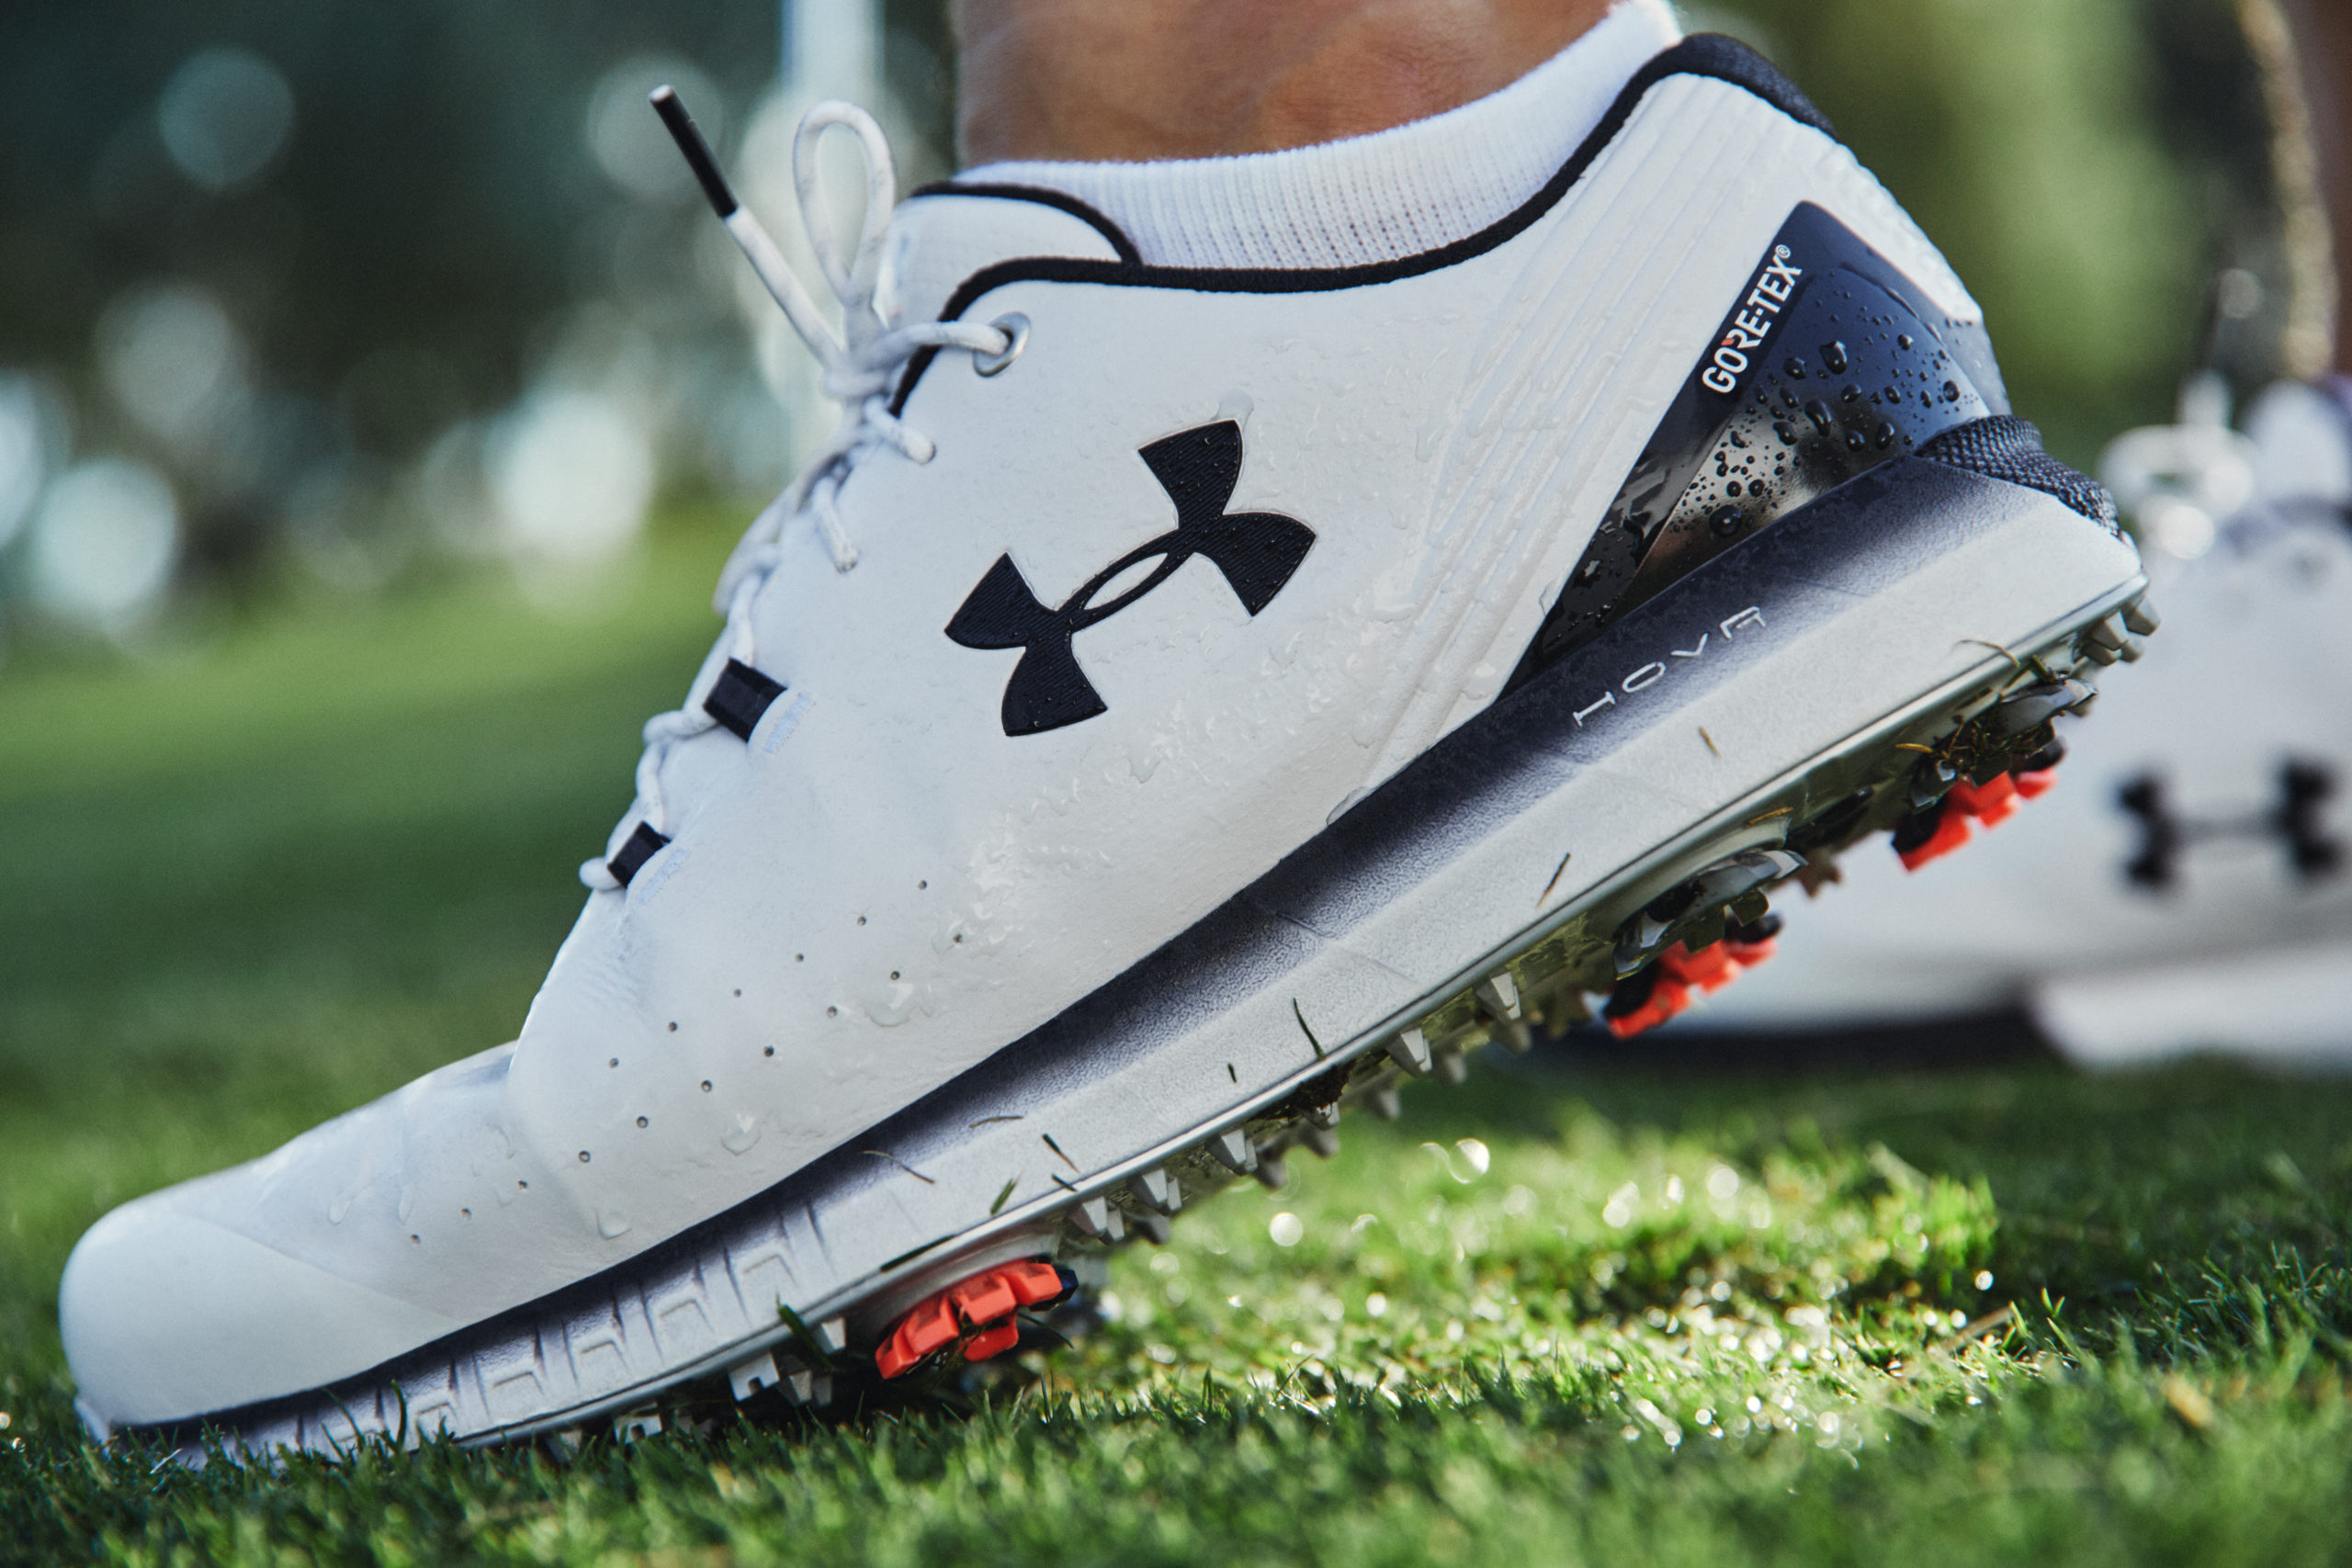 Under Armour's Hovr Drive GTX shoes are